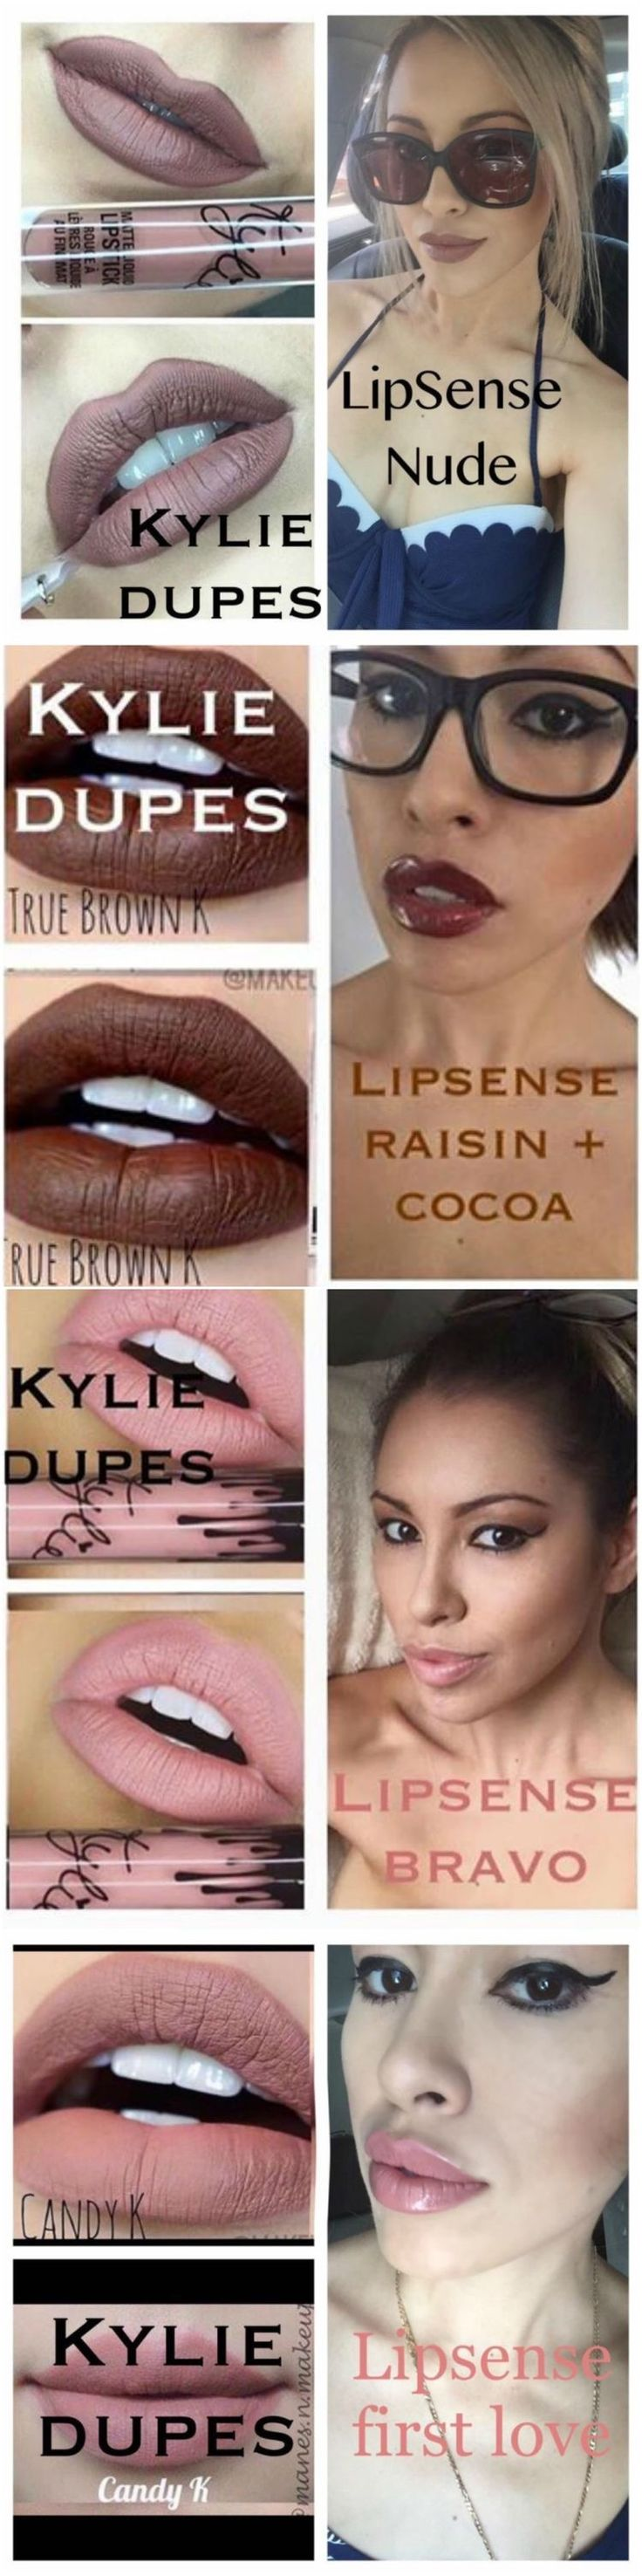 Kylie dupes with LipSense